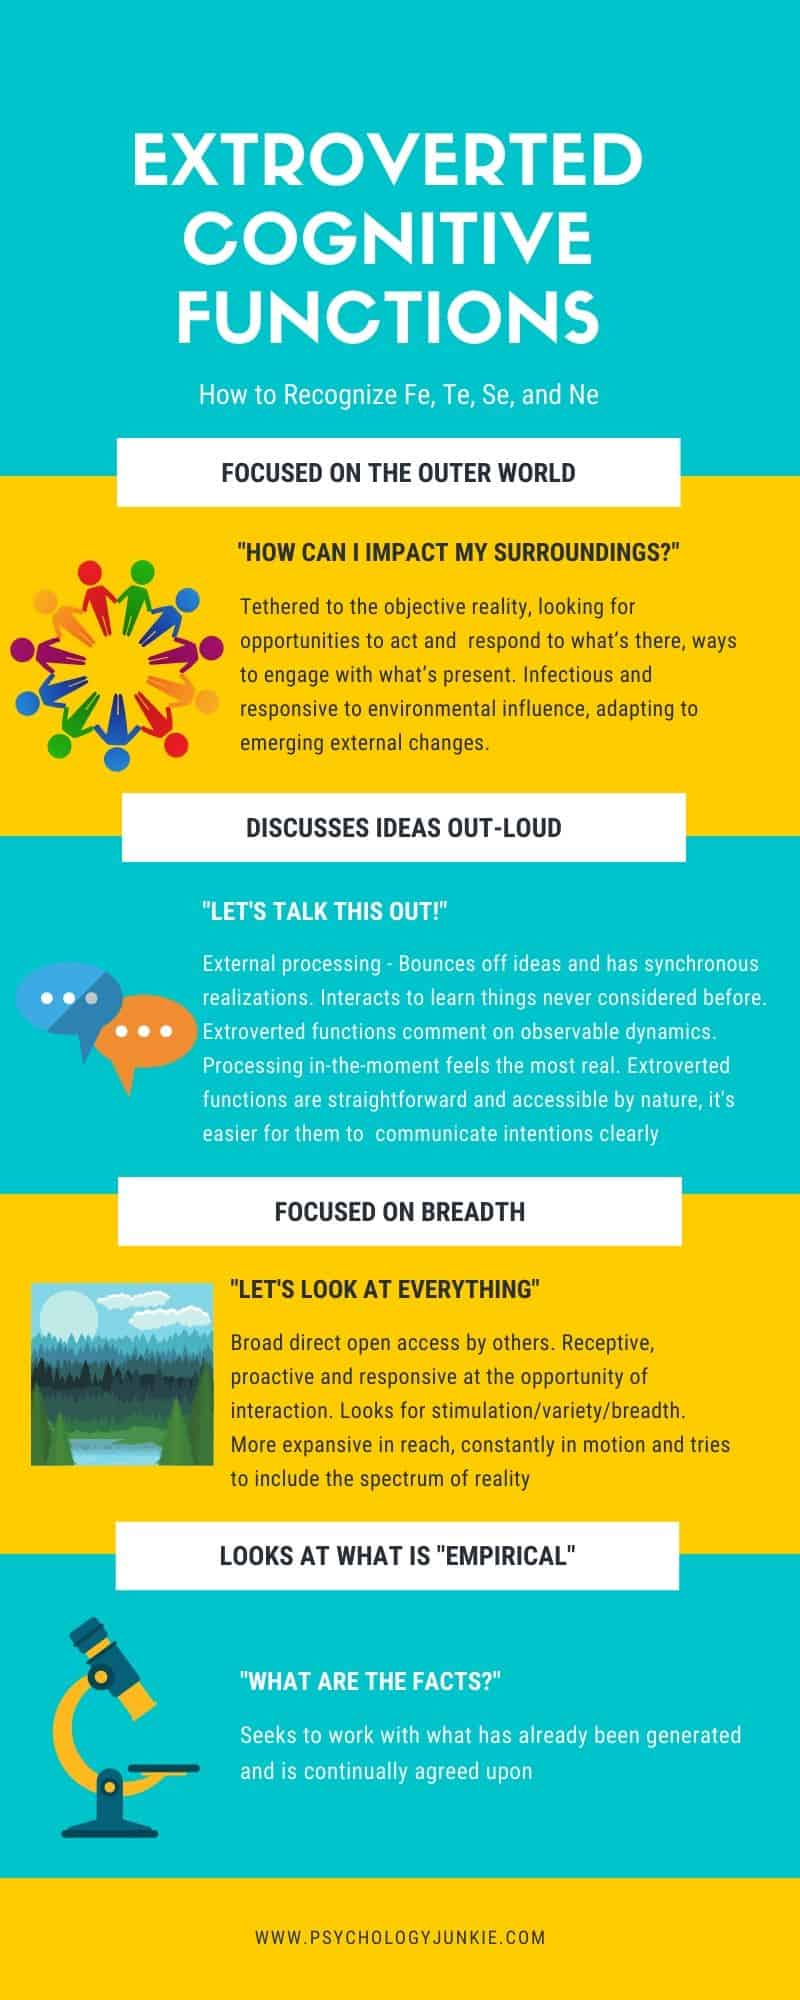 Find out how to tell if a cognitive function is introverted or extroverted. This infographic focuses on the #extroverted cognitive functions in the Myers-Briggs® system. #MBTI #Personality